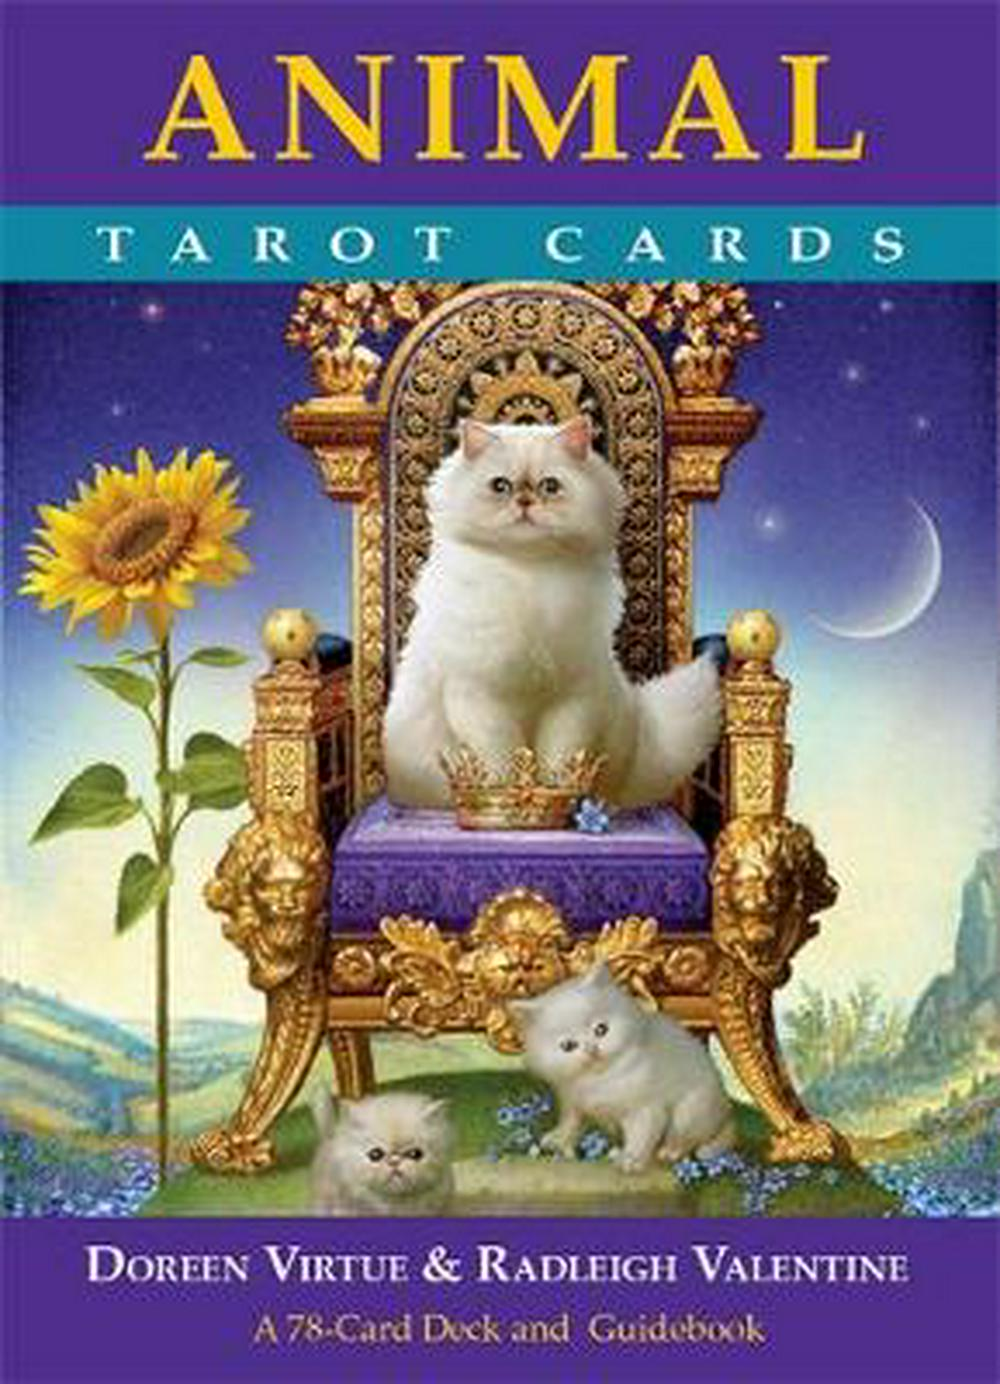 Animal Tarot Cards - Rivendell Shop NZ